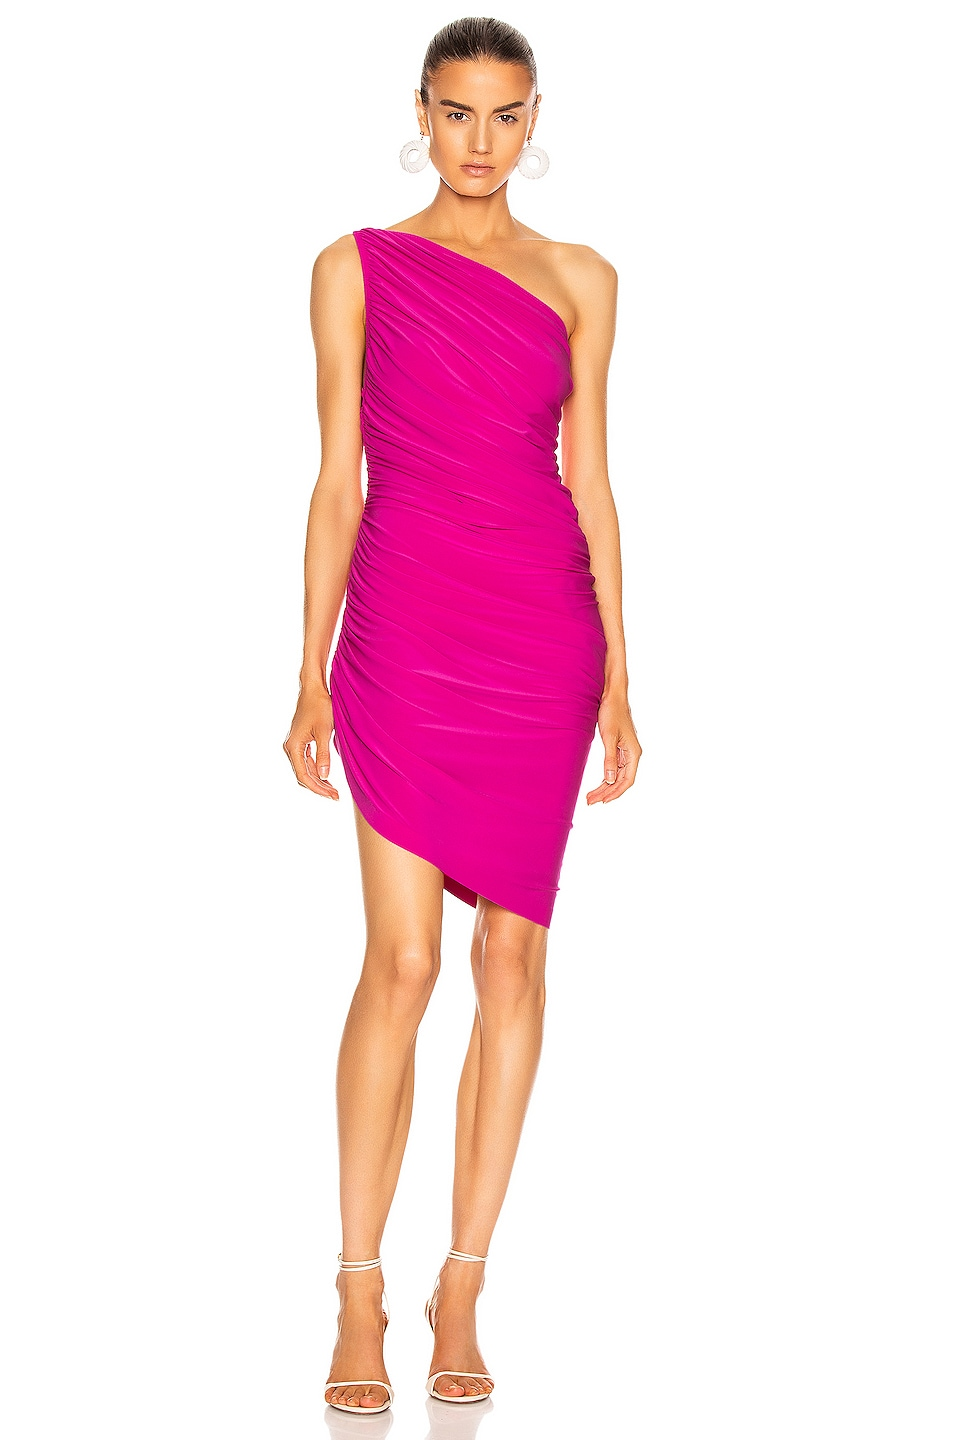 Image 1 of Norma Kamali for FWRD Diana Mini Dress in Fuchsia